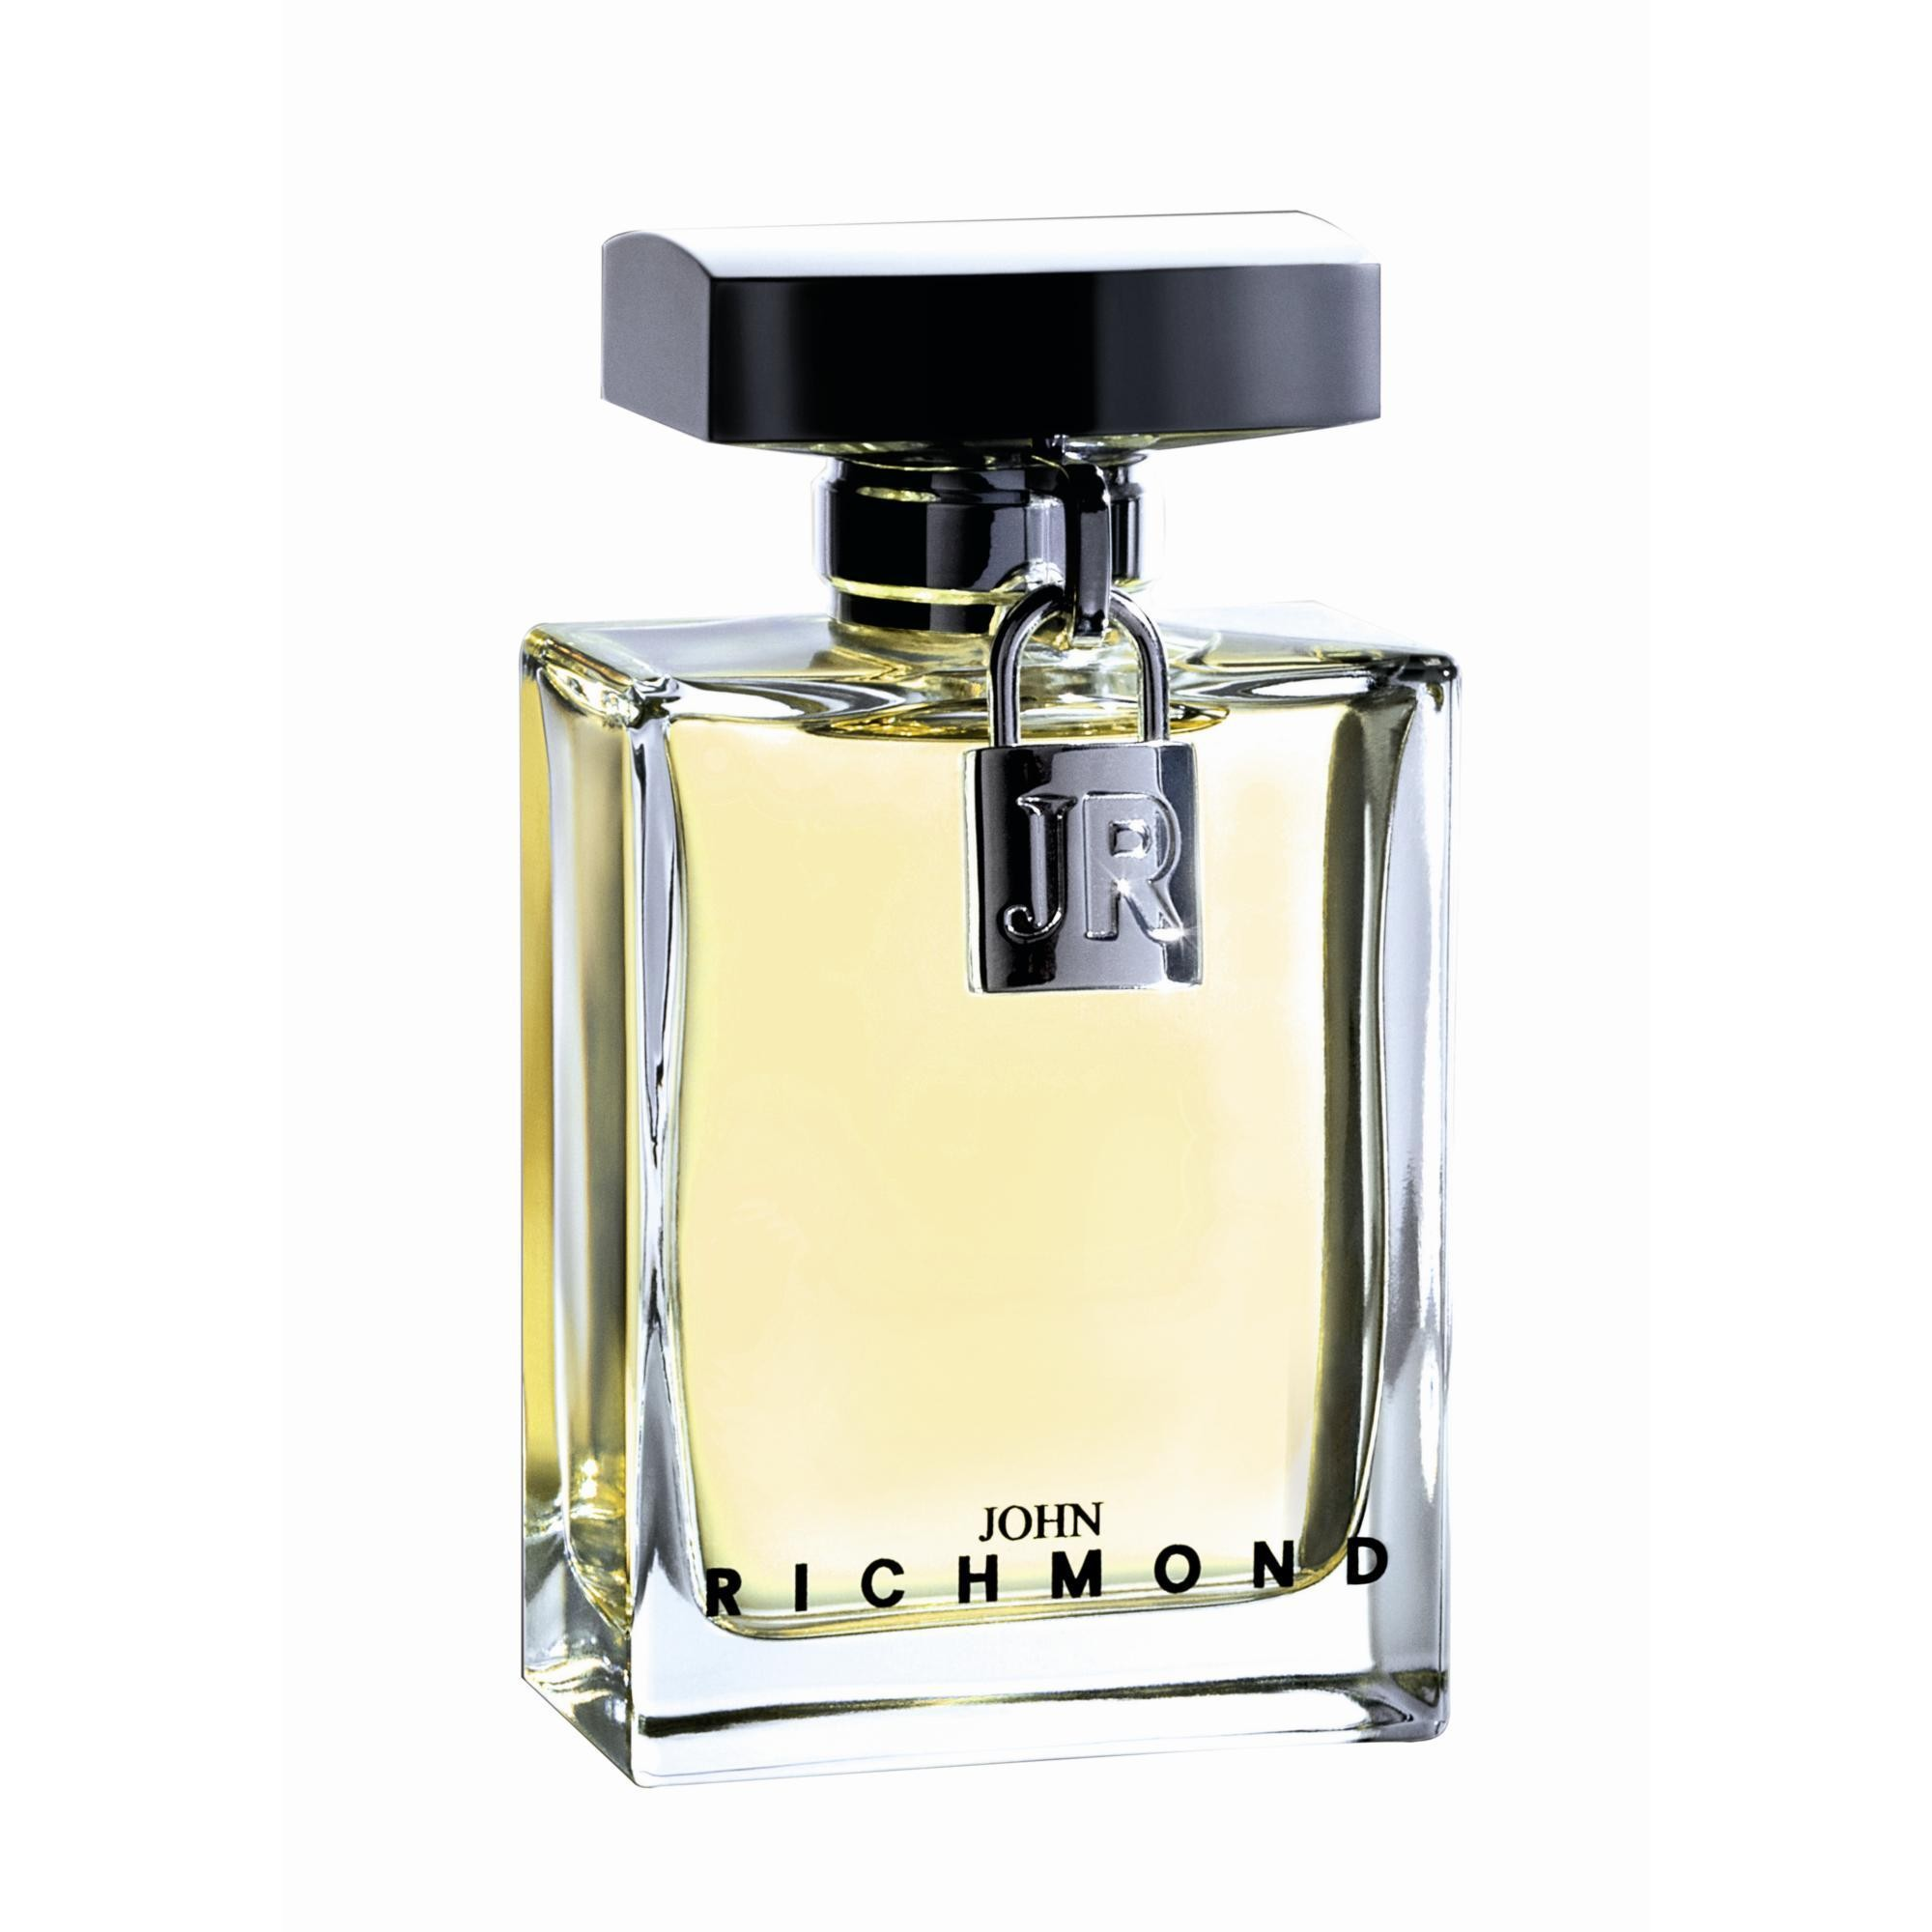 John Richmond edp spray donna 30 ml